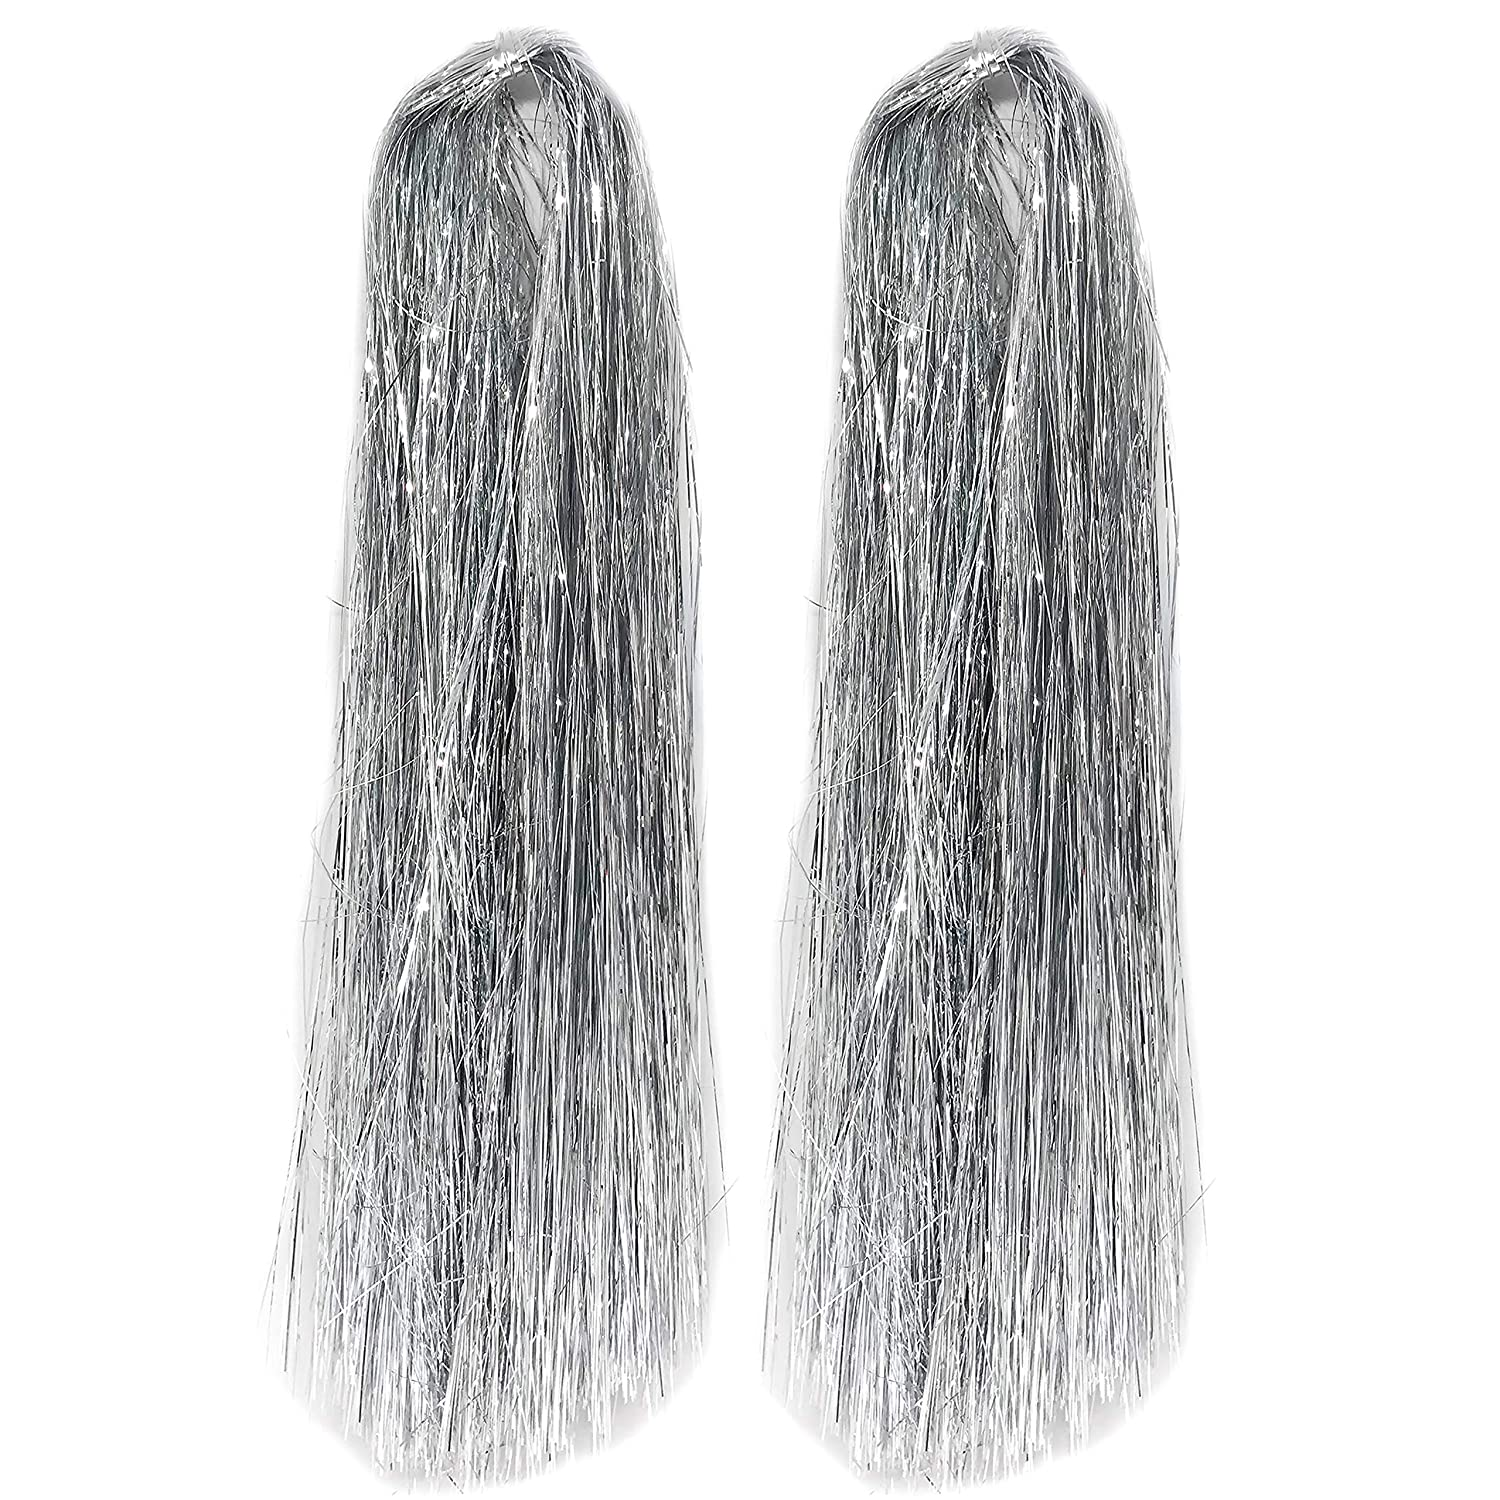 FLOMO Christmas Holiday Silver Tinsel Strands Metallic Icicles, 18 Inches (4000 Strands)